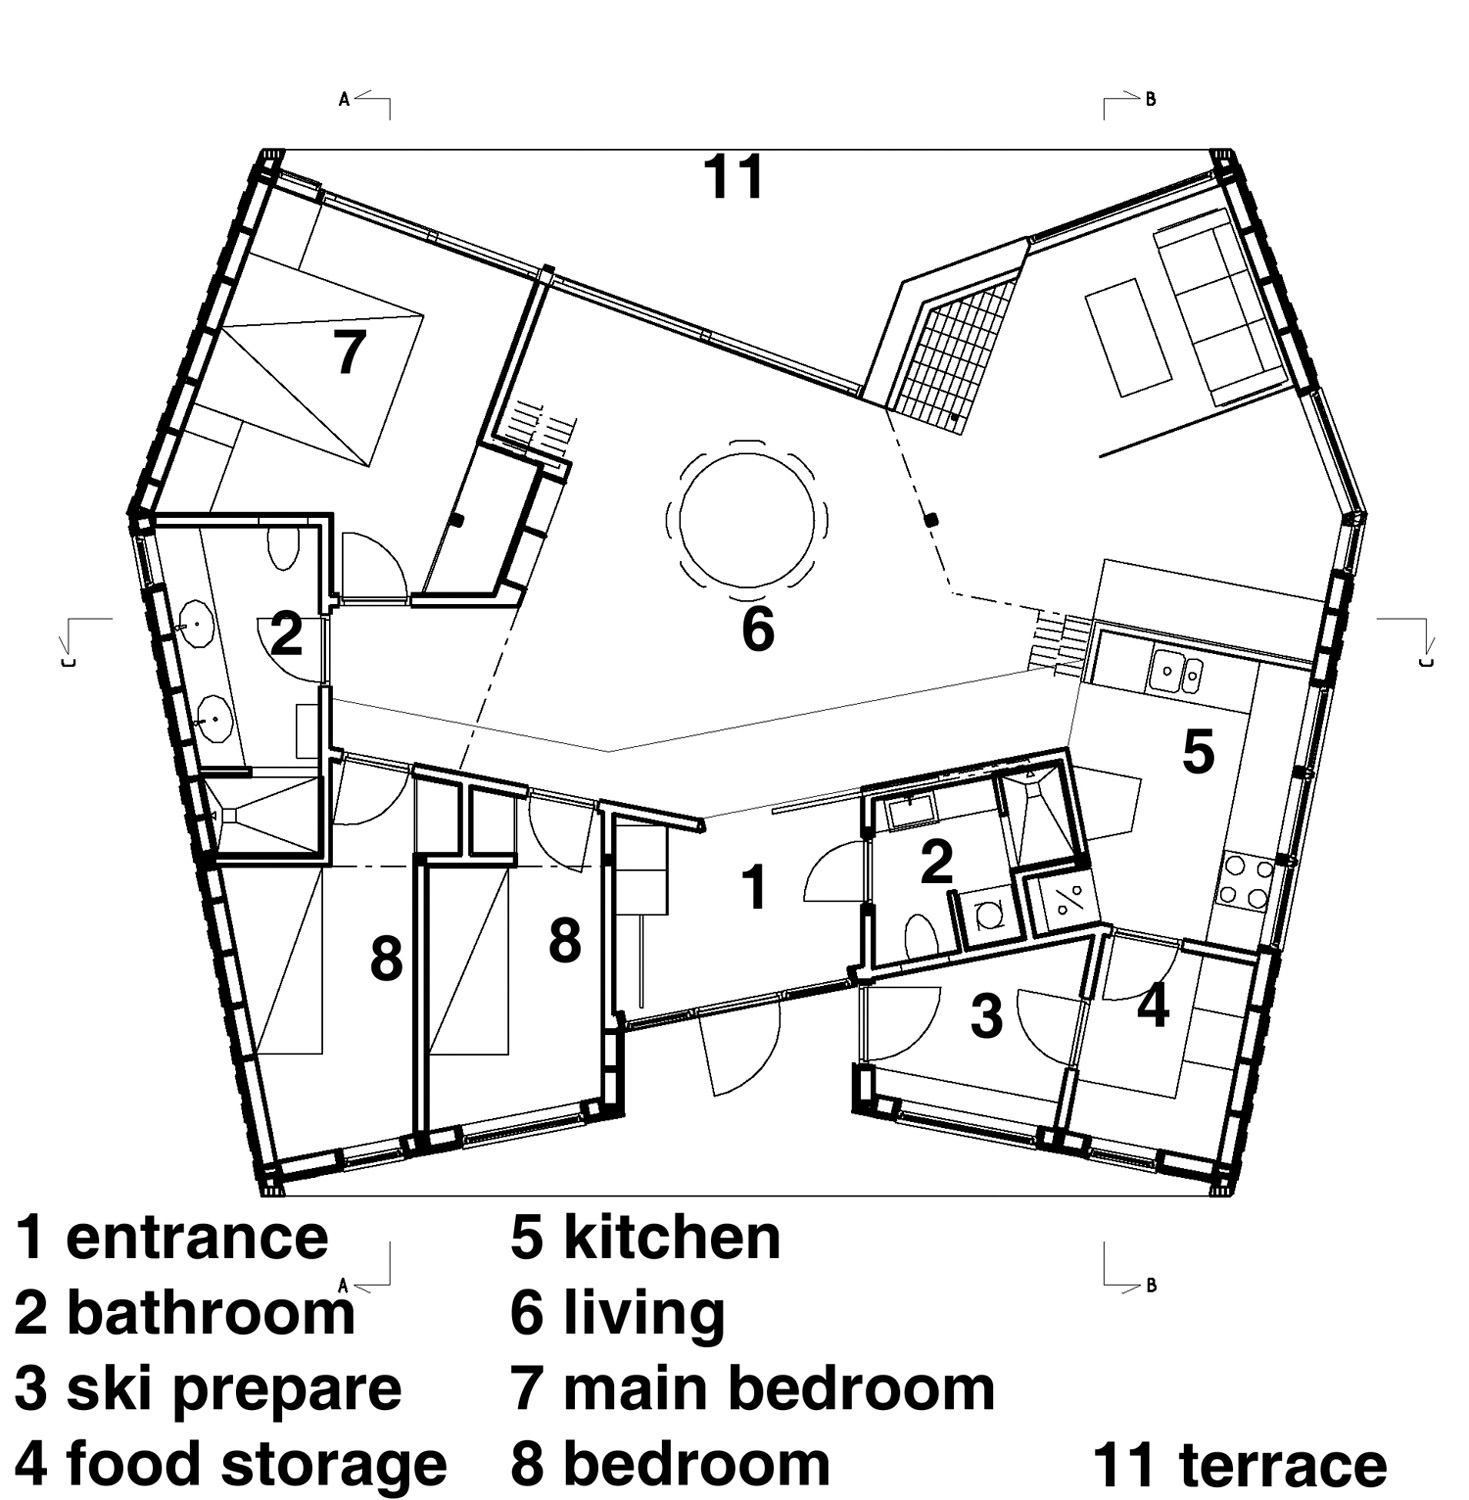 Custom Cabin Plans additionally Arch Rafter House Plans together with 342344009147576858 additionally Floor Plan 20 X 40 moreover 40 X 50 House Floor Plan Html. on 24x32 house floor plans